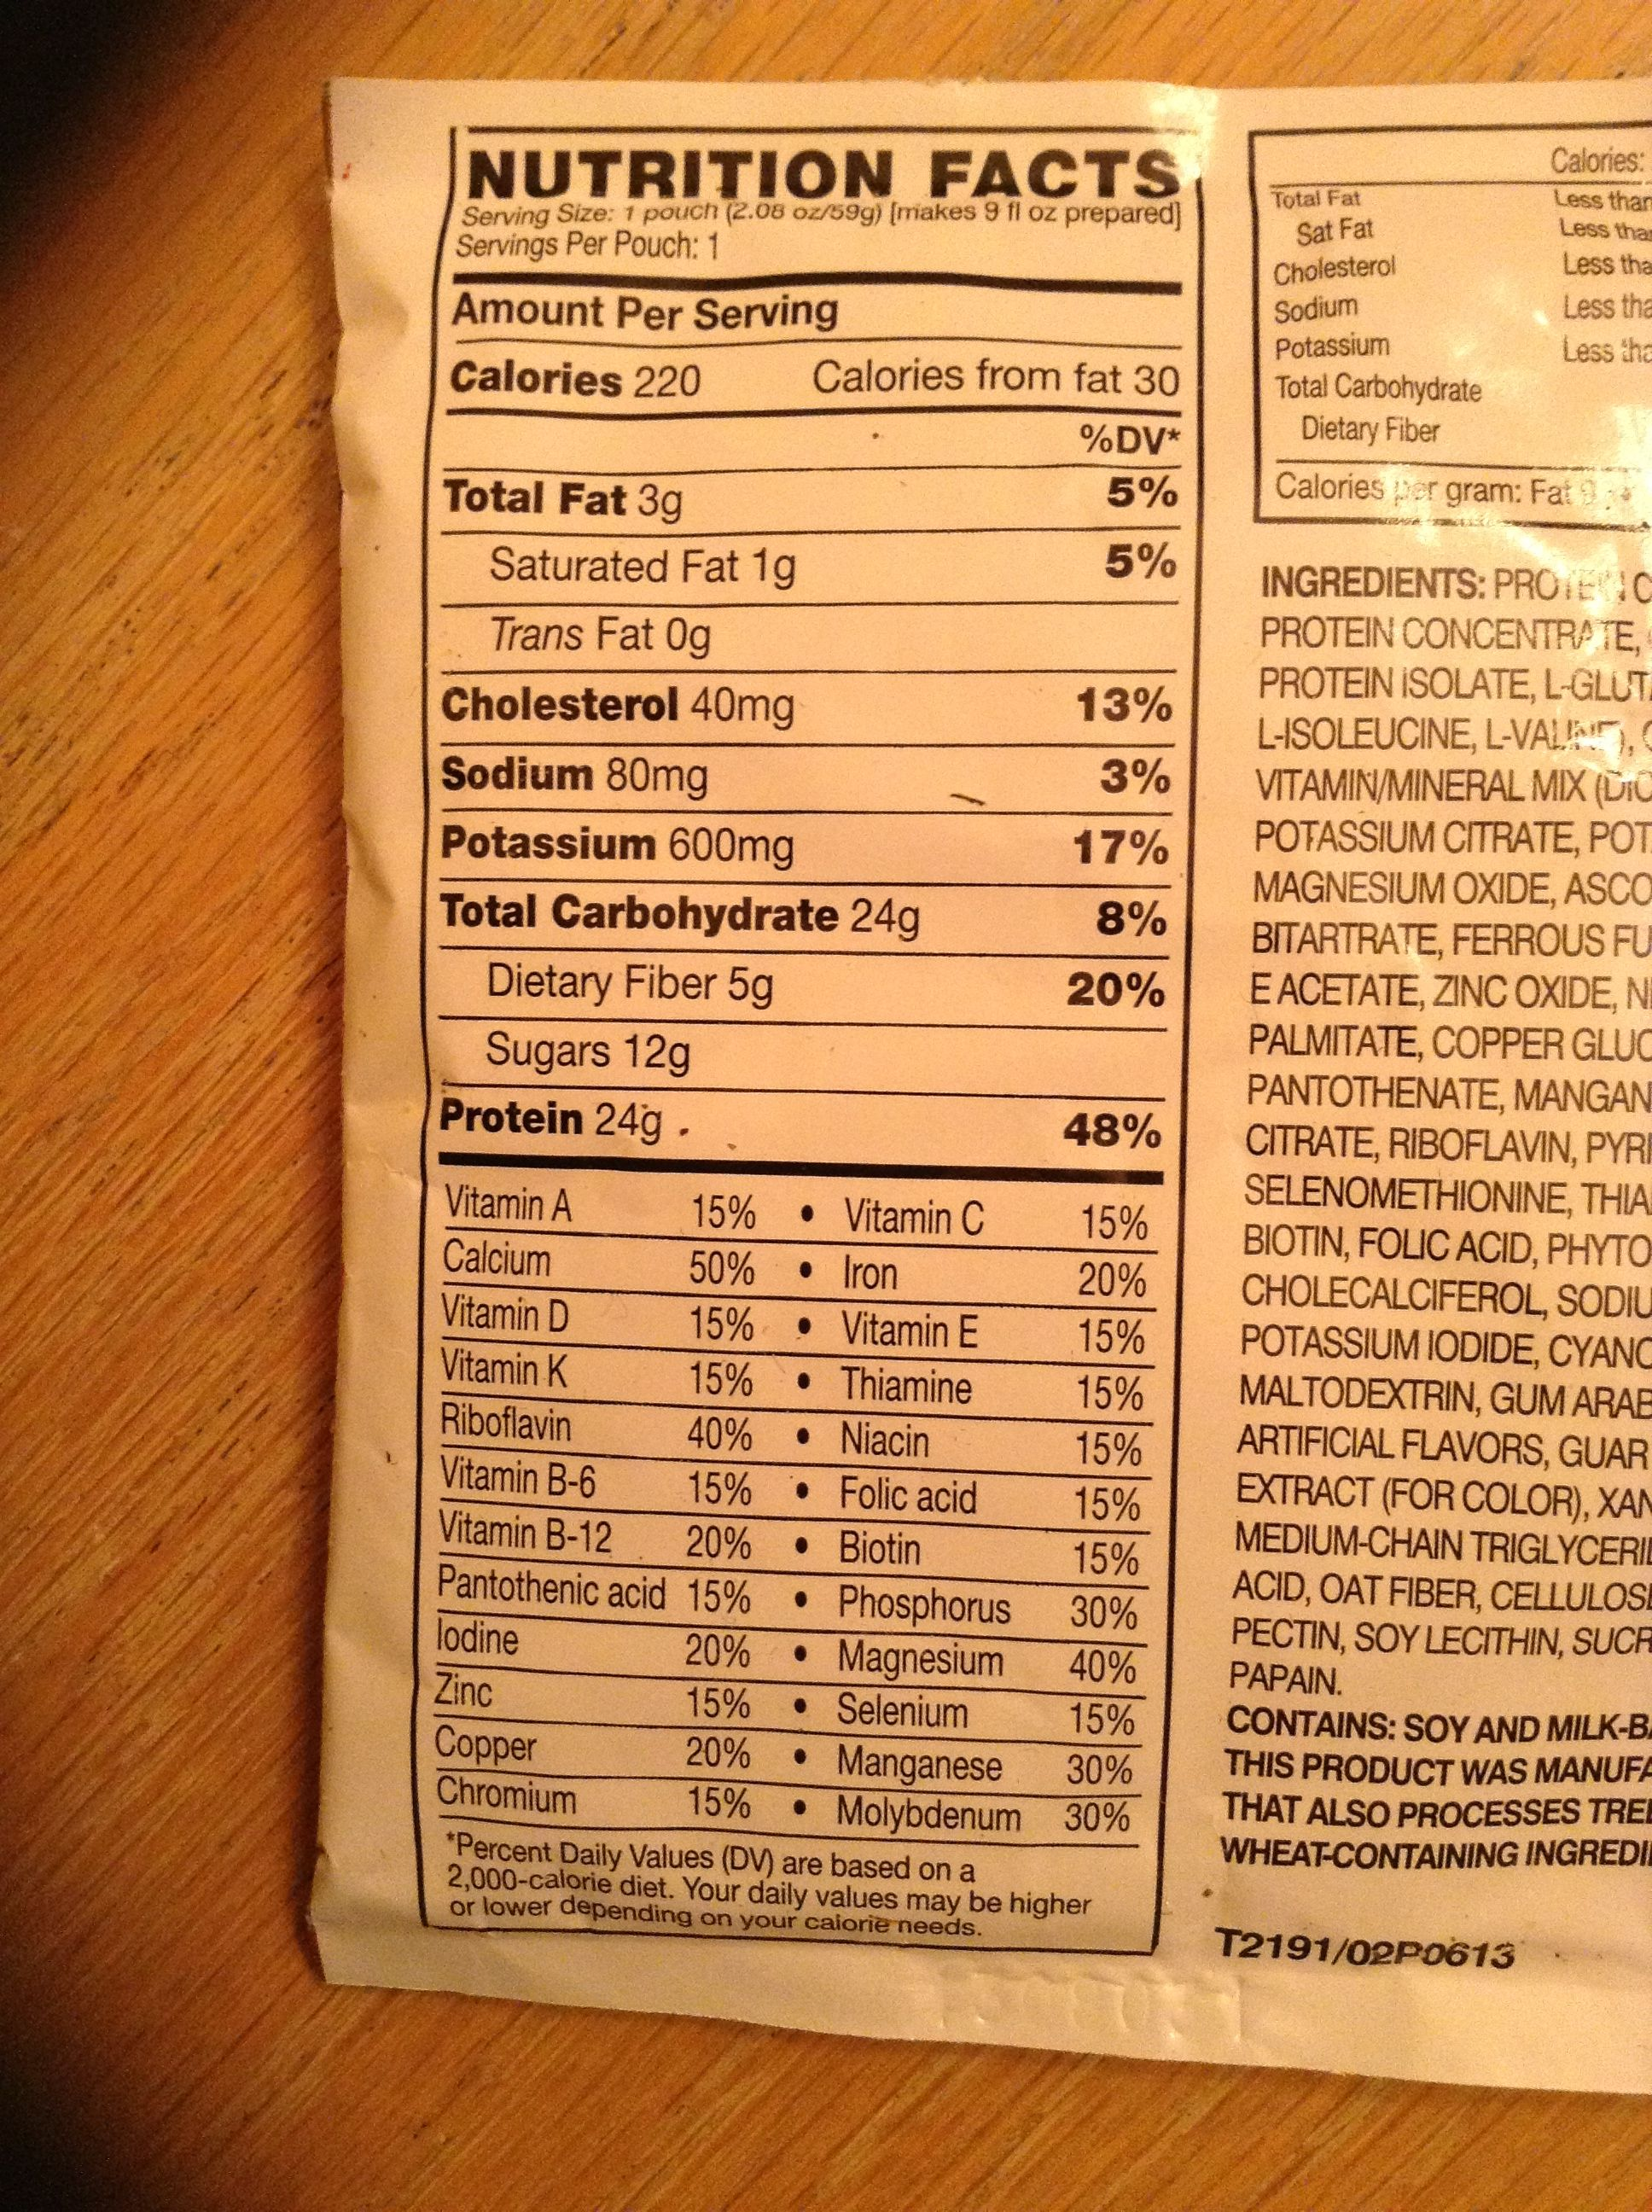 Nutrition Facts for Meal Replacement Shake.